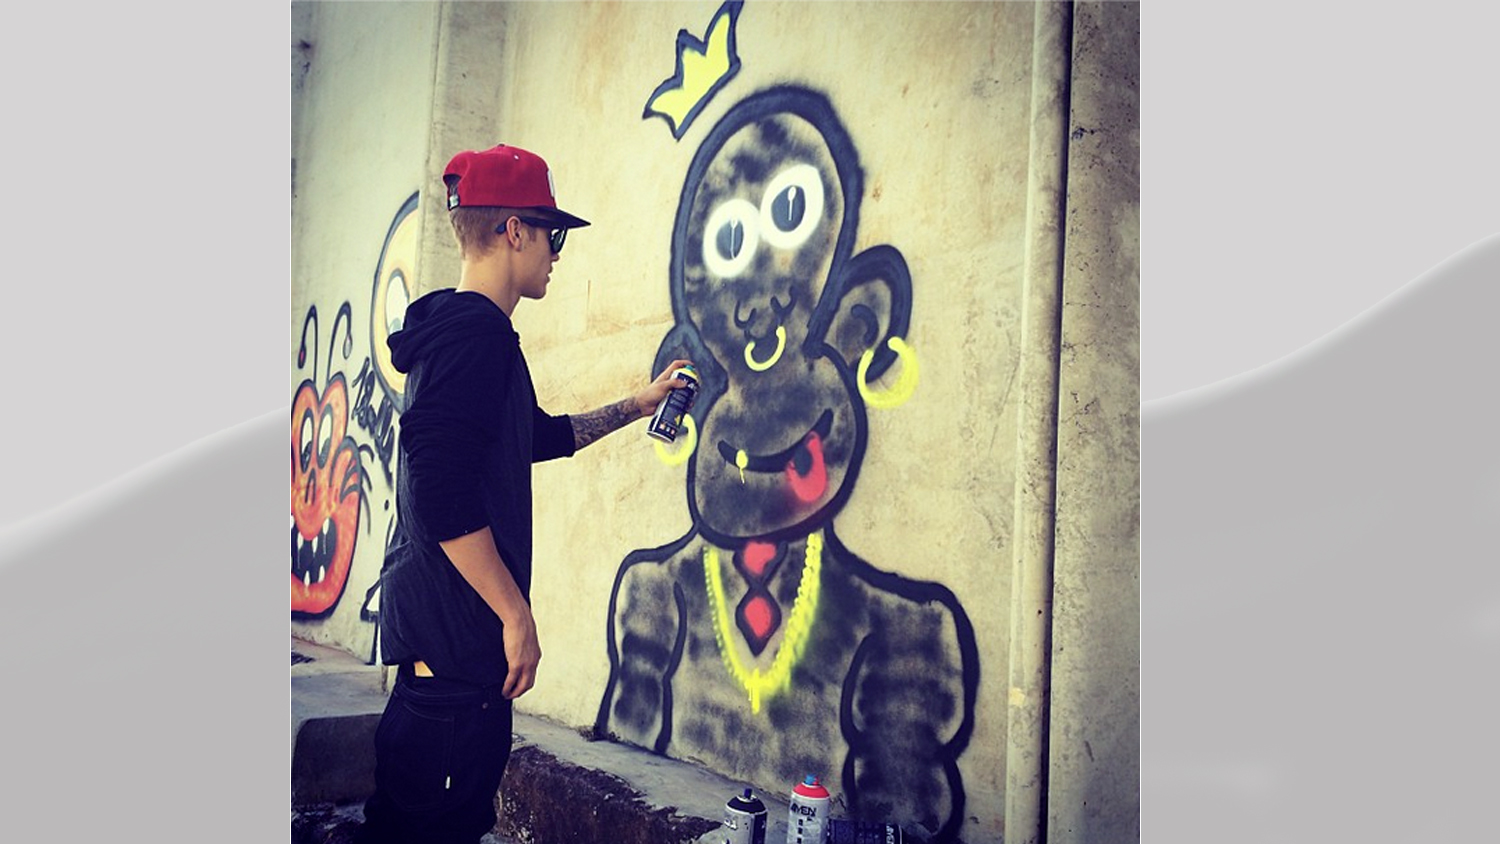 PHOTO: Justin Bieber posted this image of graffiti to his Instagram account Nov. 7, 2013.